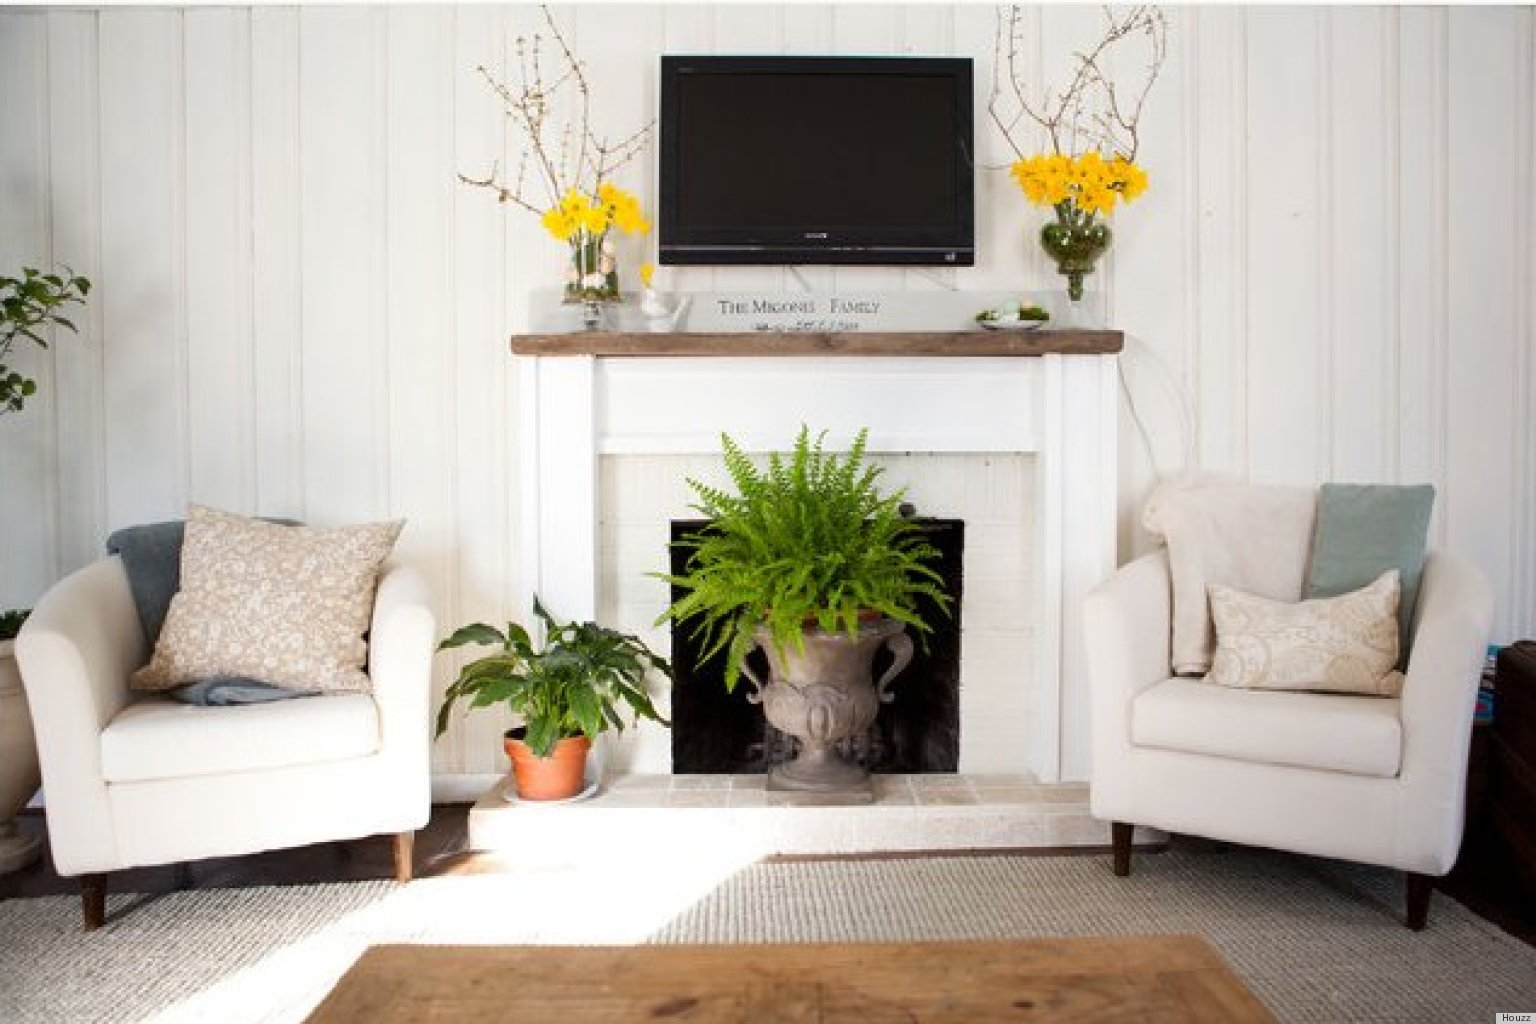 Design Fireplace Decorating Ideas 10 ways to decorate your fireplace in the summer since you wont need it anyway photos huffpost